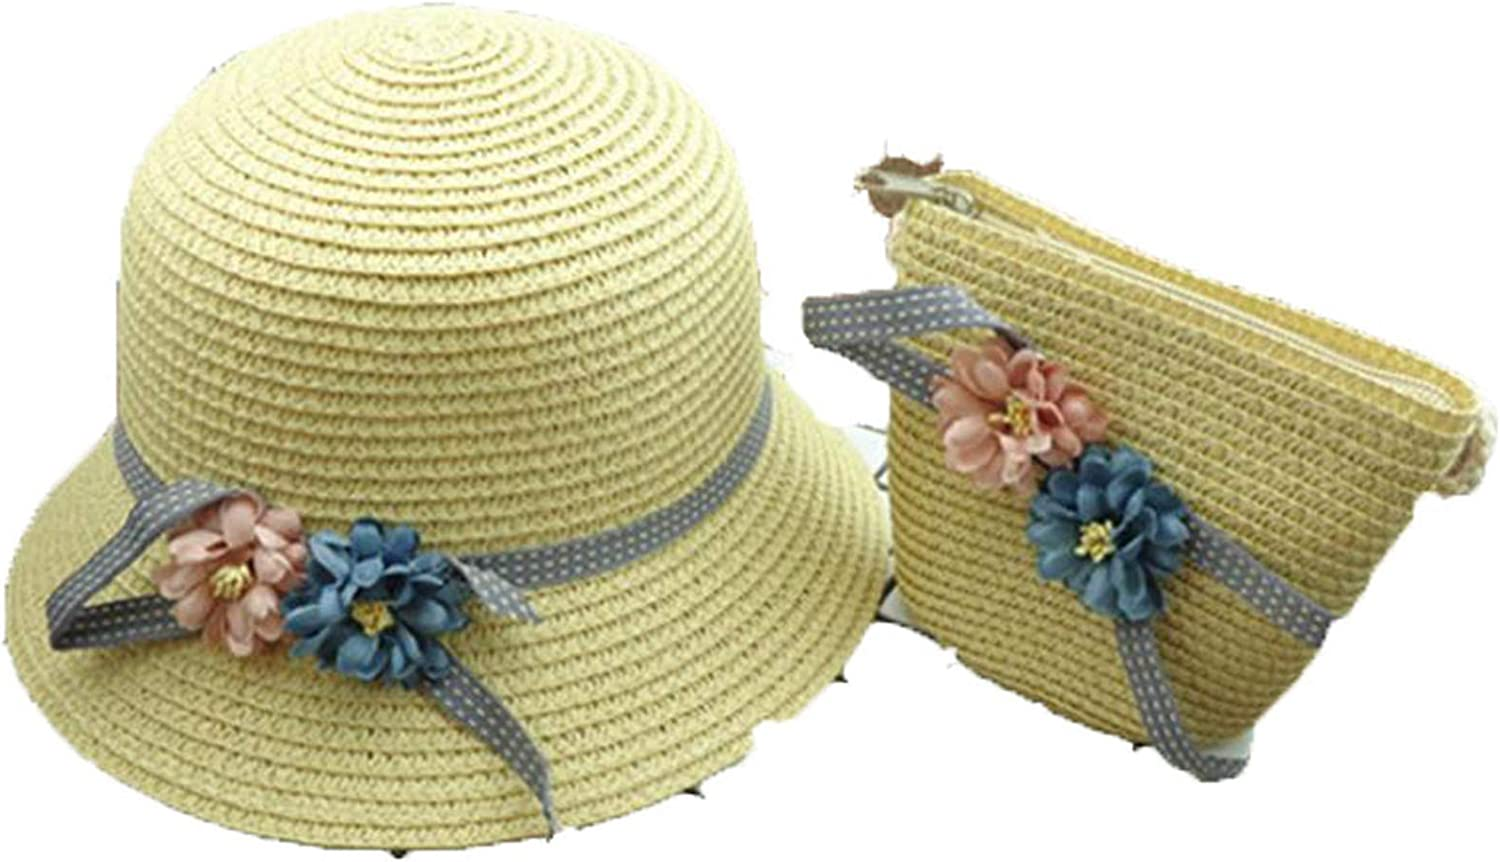 Boy Girls Straw Hats Flowers Summer Sun Hats for Kids Children Beach Hats Foldable Sunscreen Including Bag Beige 1 3 to 8 Years Old